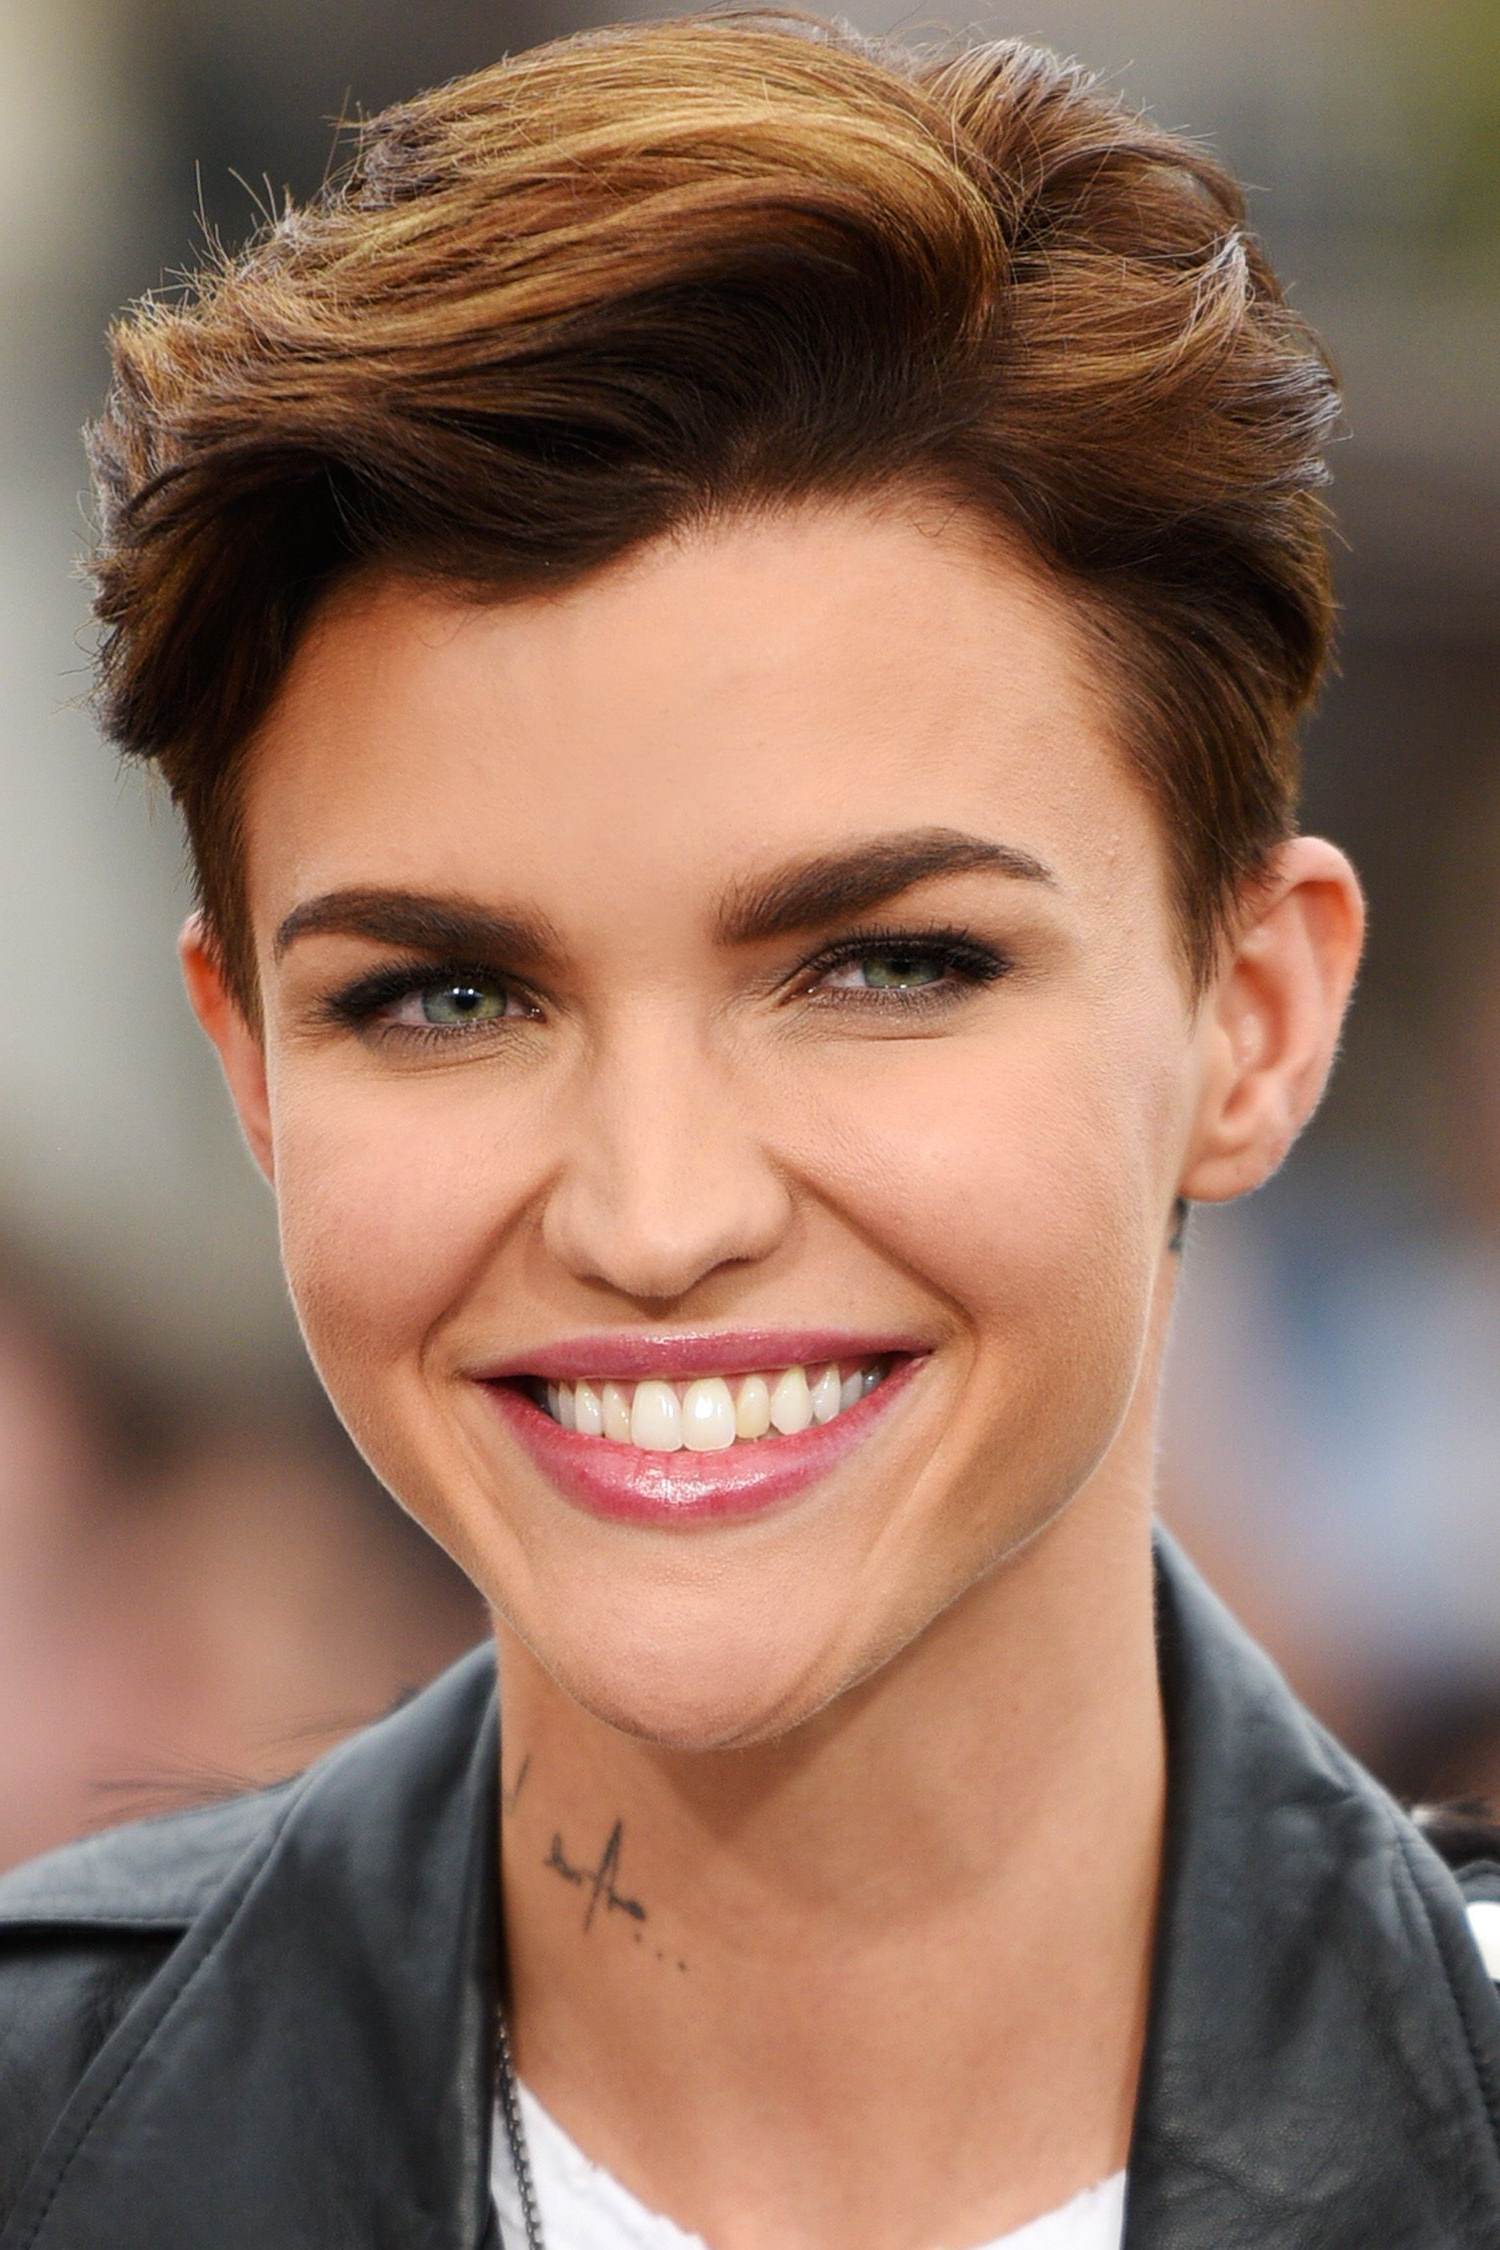 The Top Pixie Haircuts Of All Time | Pixie Haircuts | Pinterest Intended For Ruby Rose Short Hairstyles (View 24 of 25)